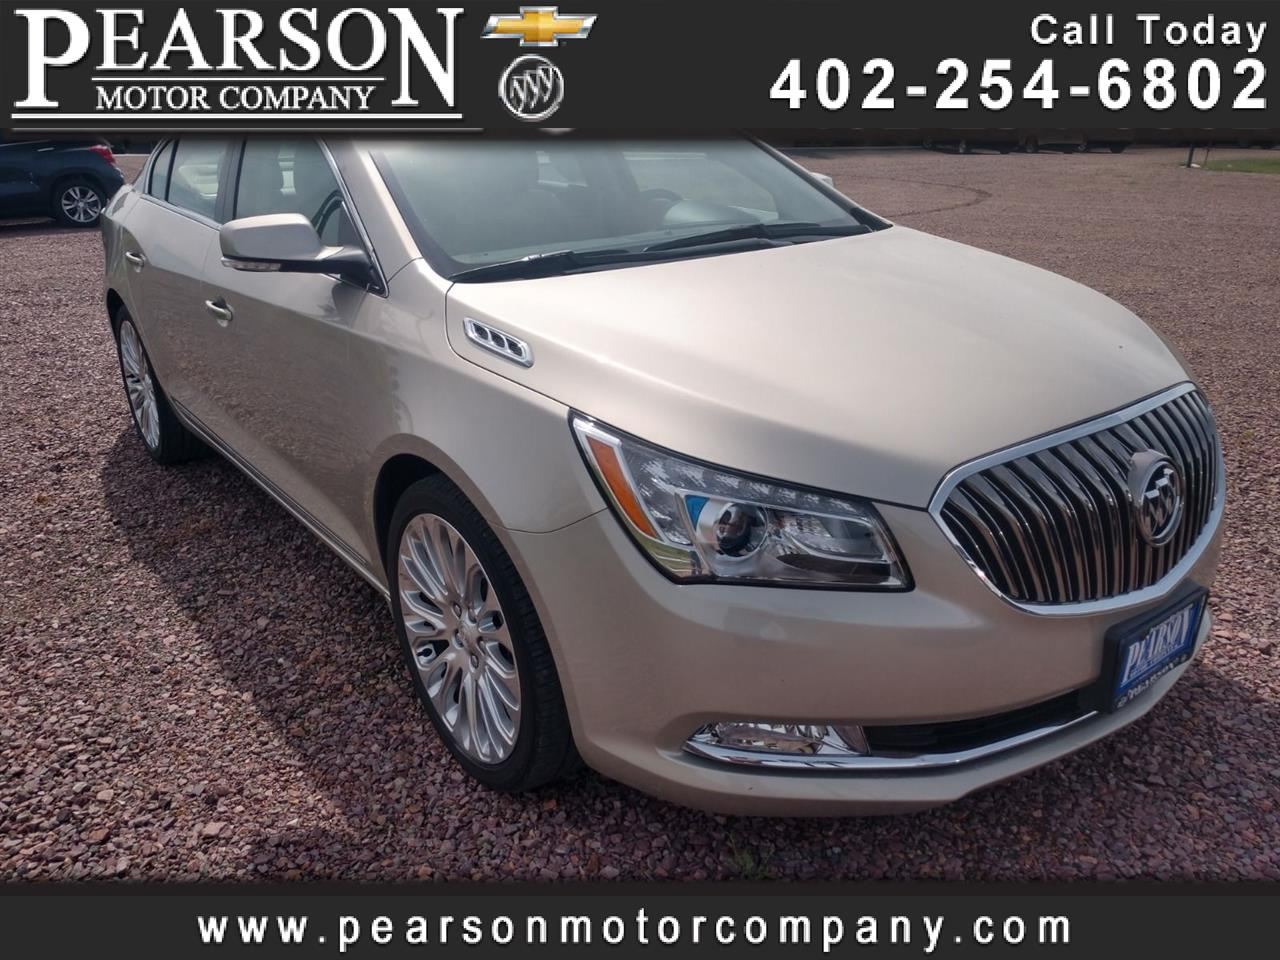 2016 Buick LaCrosse Premium Package 2, w/Leather